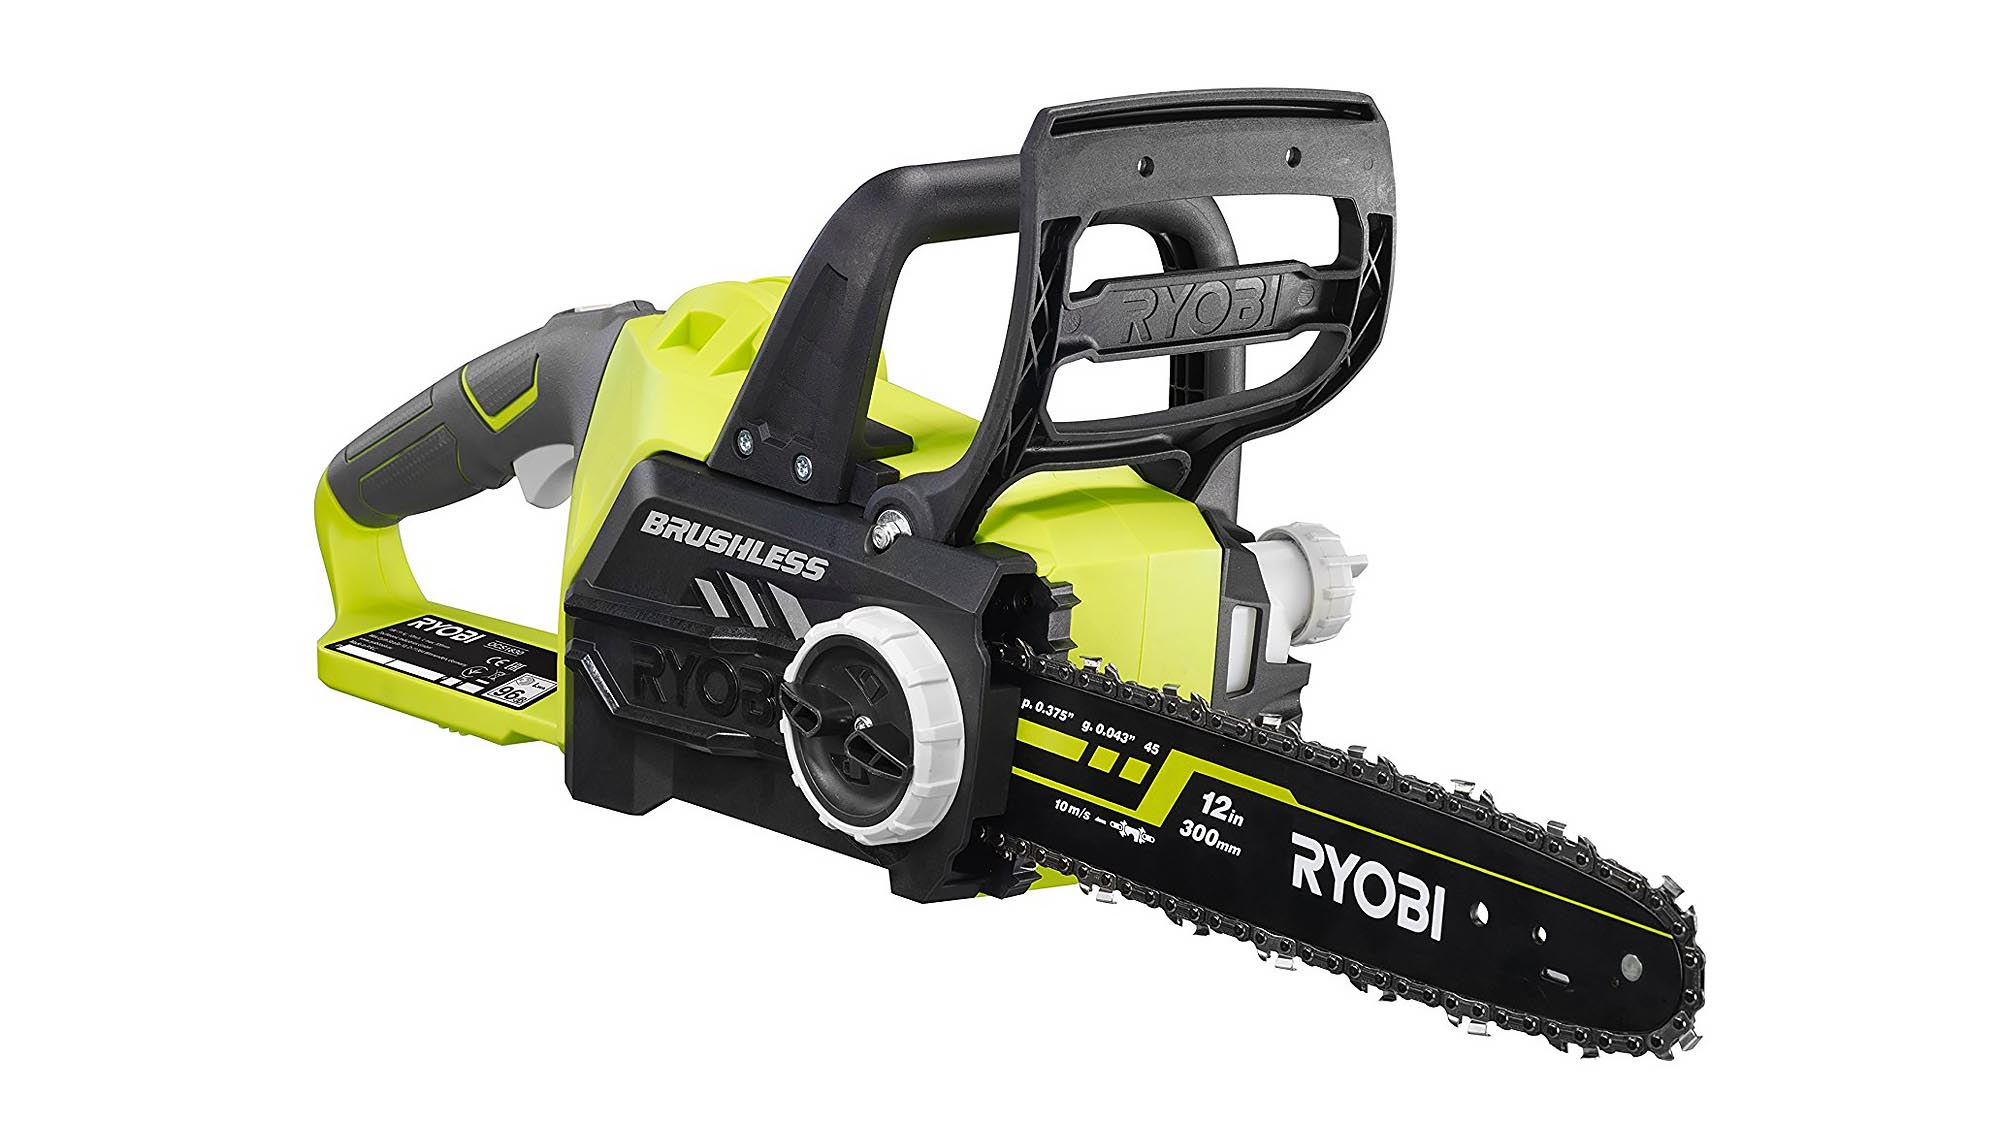 Best chainsaws make light work of heavy pruning jobs from 50 ryobis chainsaw looks cheap at 134 but that price doesnt include a battery if youre invested in ryobis one range of tools which includes everything greentooth Images